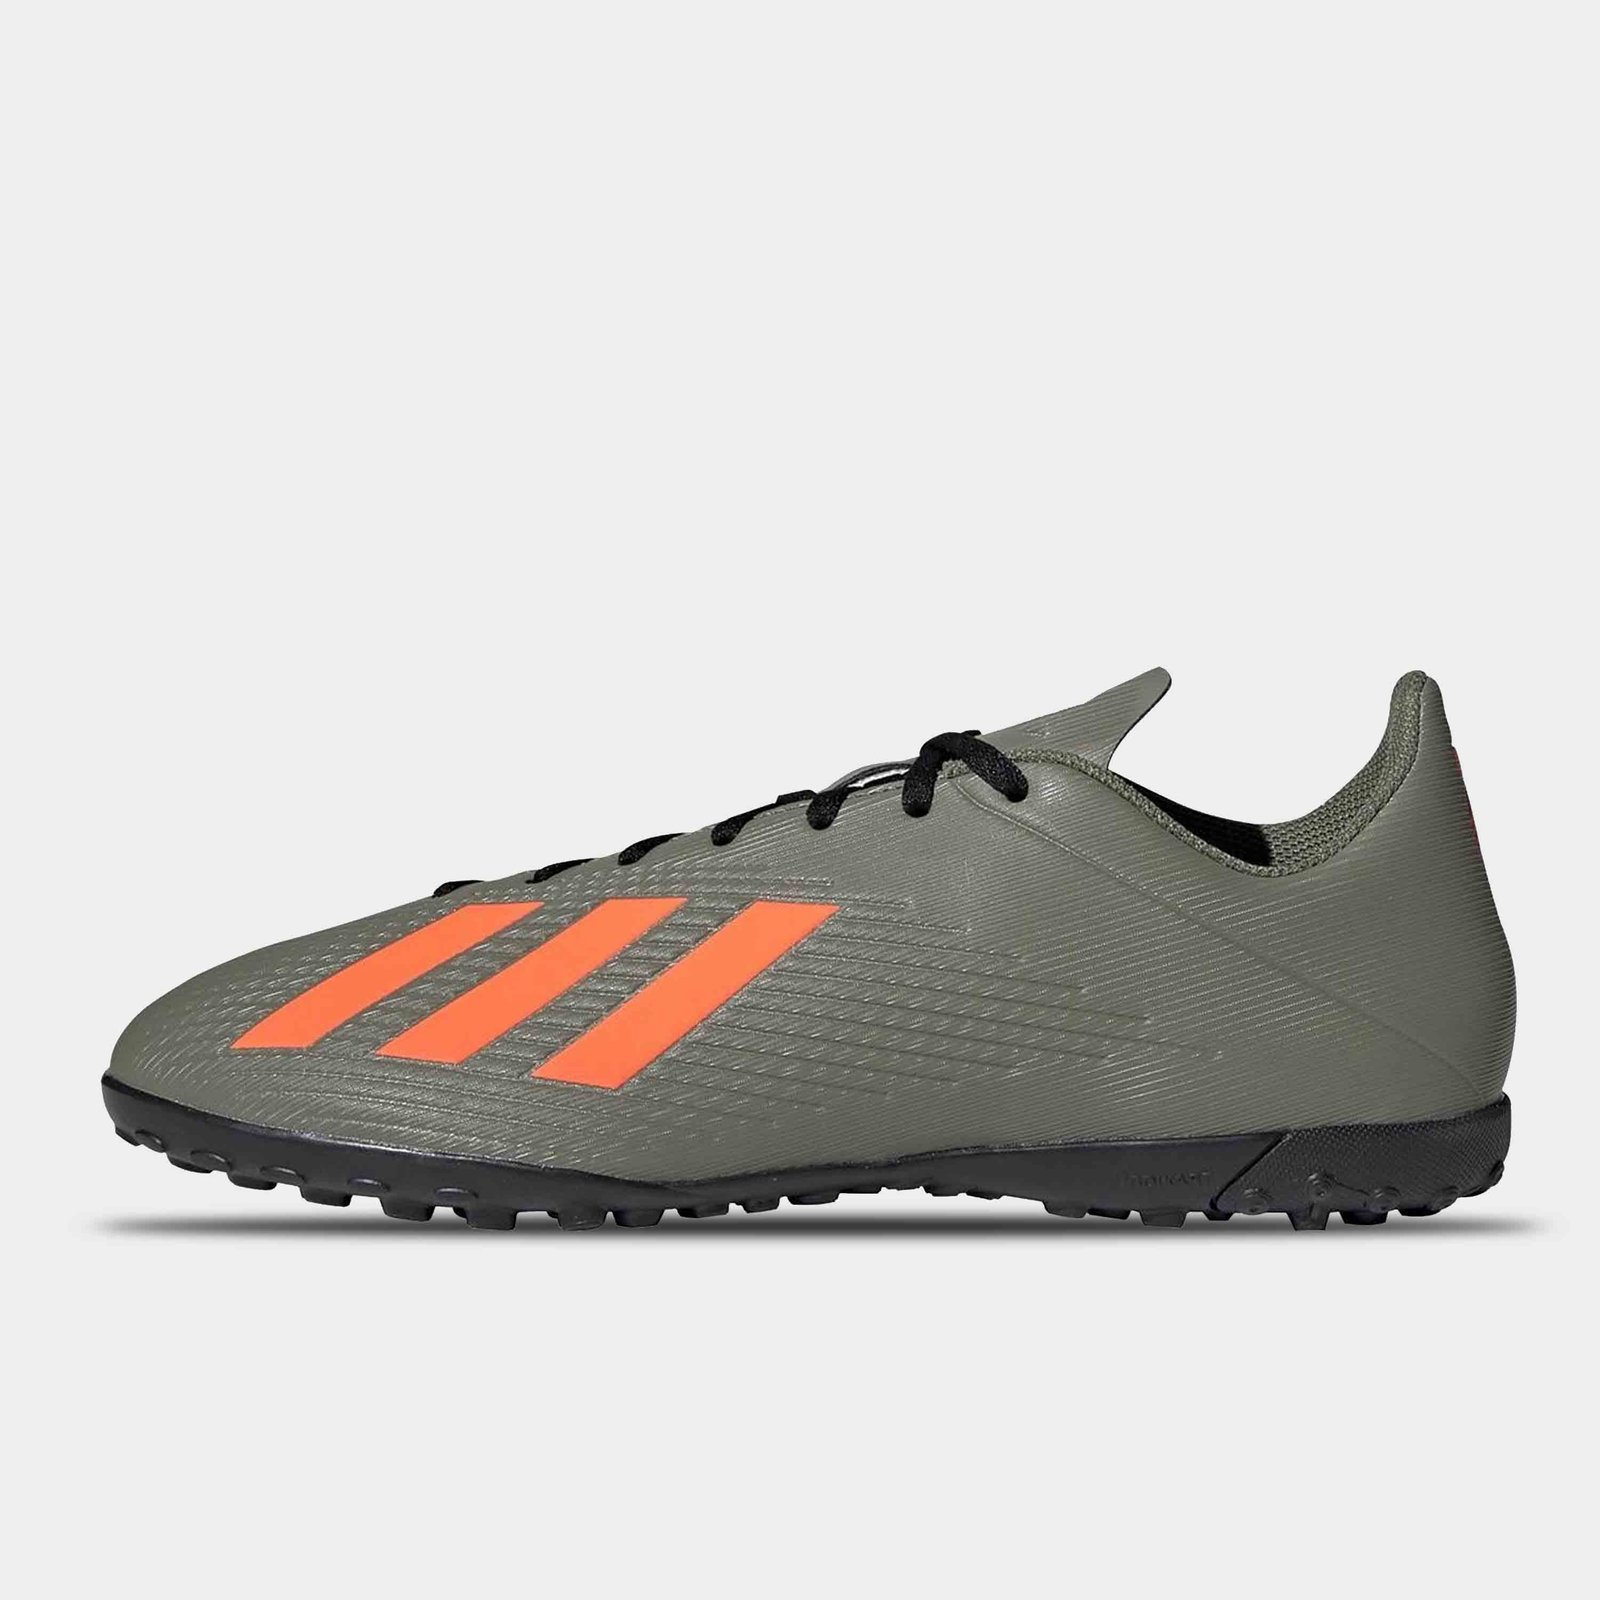 X 19.4 Mens Astro Turf Trainers